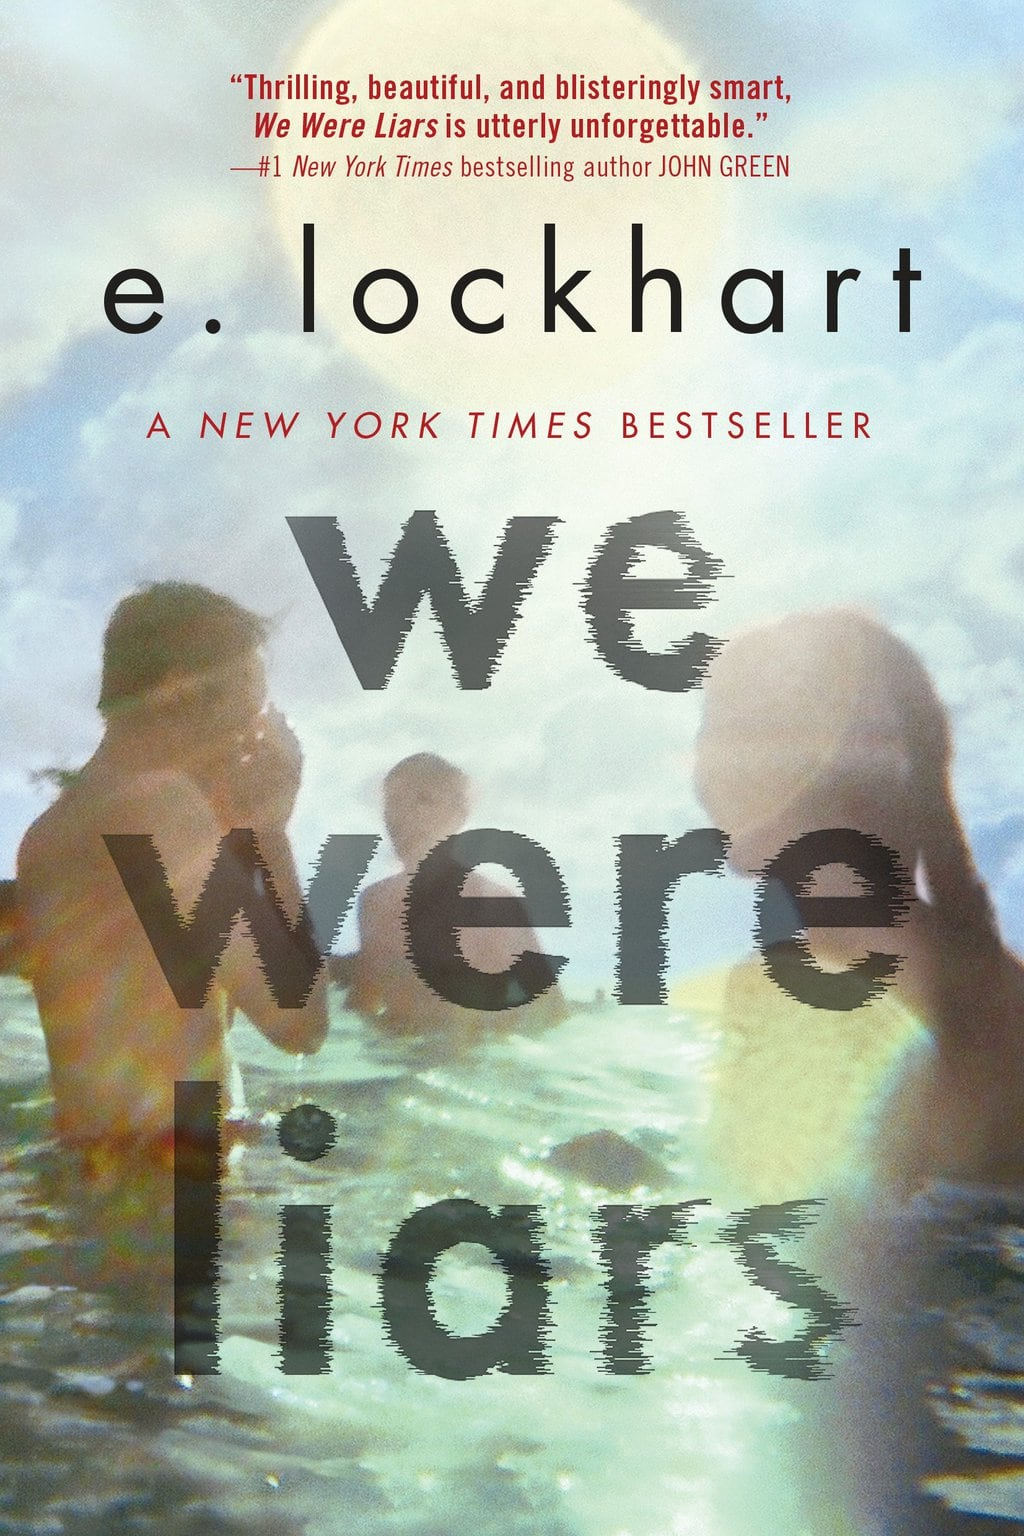 We Were Liars by E Lockhart - best beach reads and spring break books